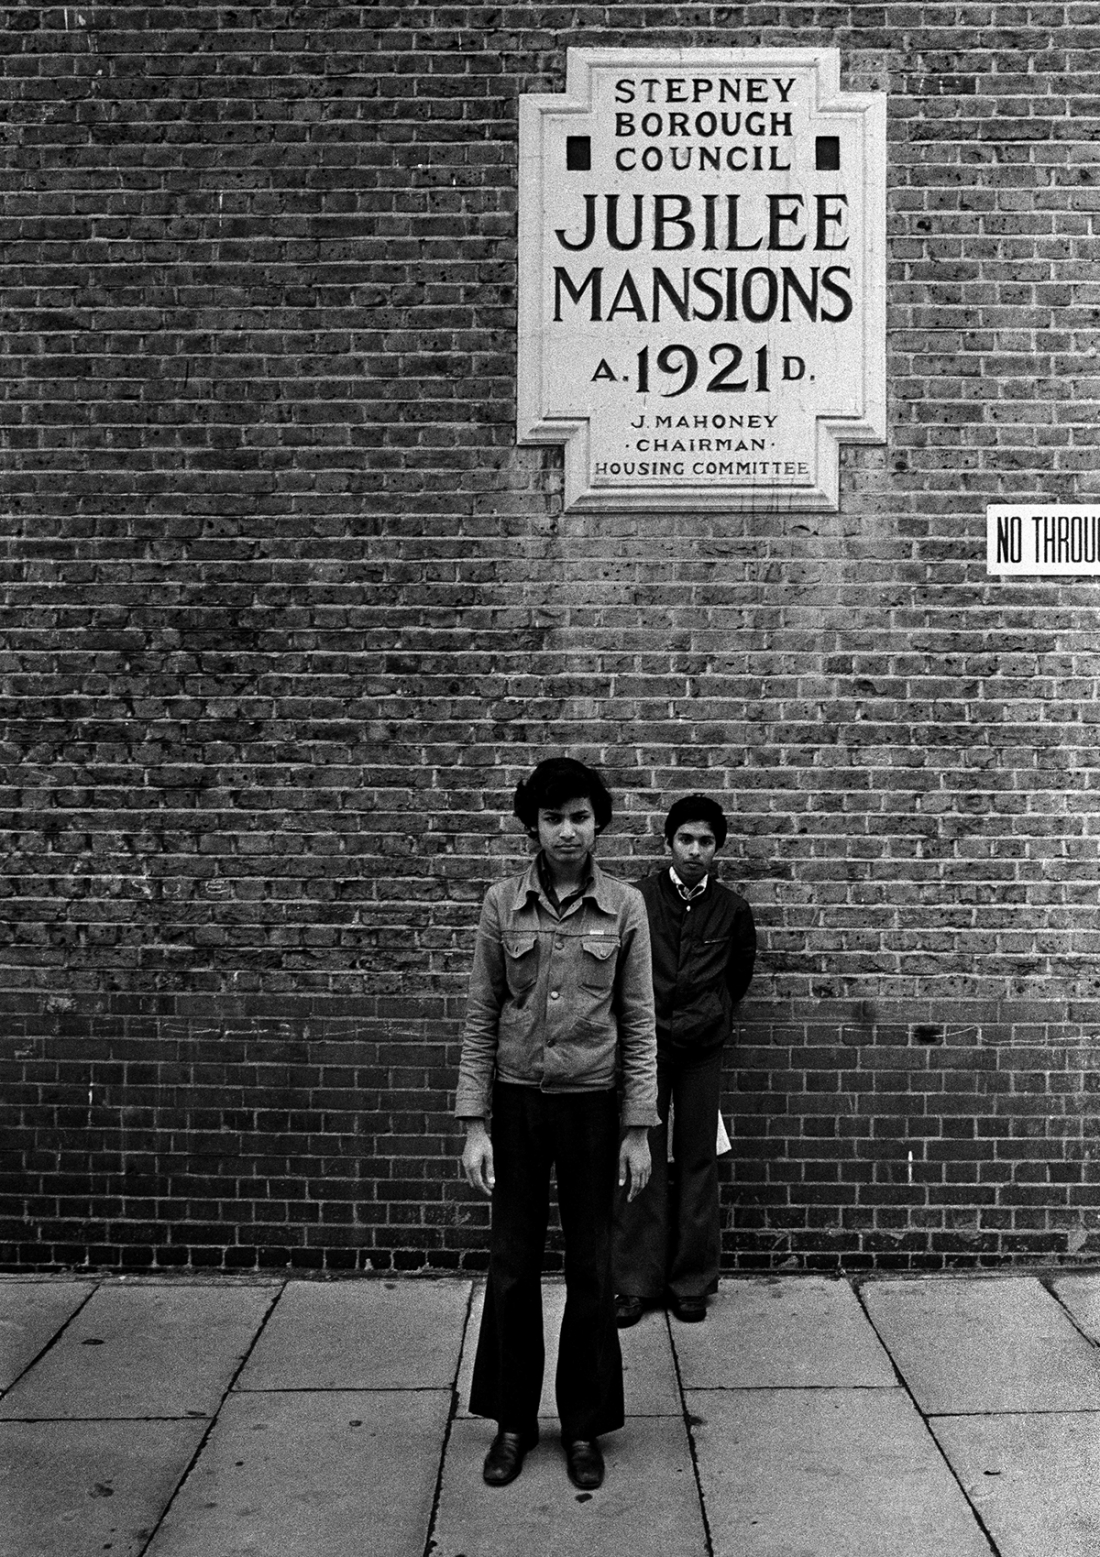 Jubilee Street, Stepney, London 1977. The photograph was taken during the celebrations of Queen Elizabeth II Silver Jubilee as a statement of reaction to Britain's multiculturalism